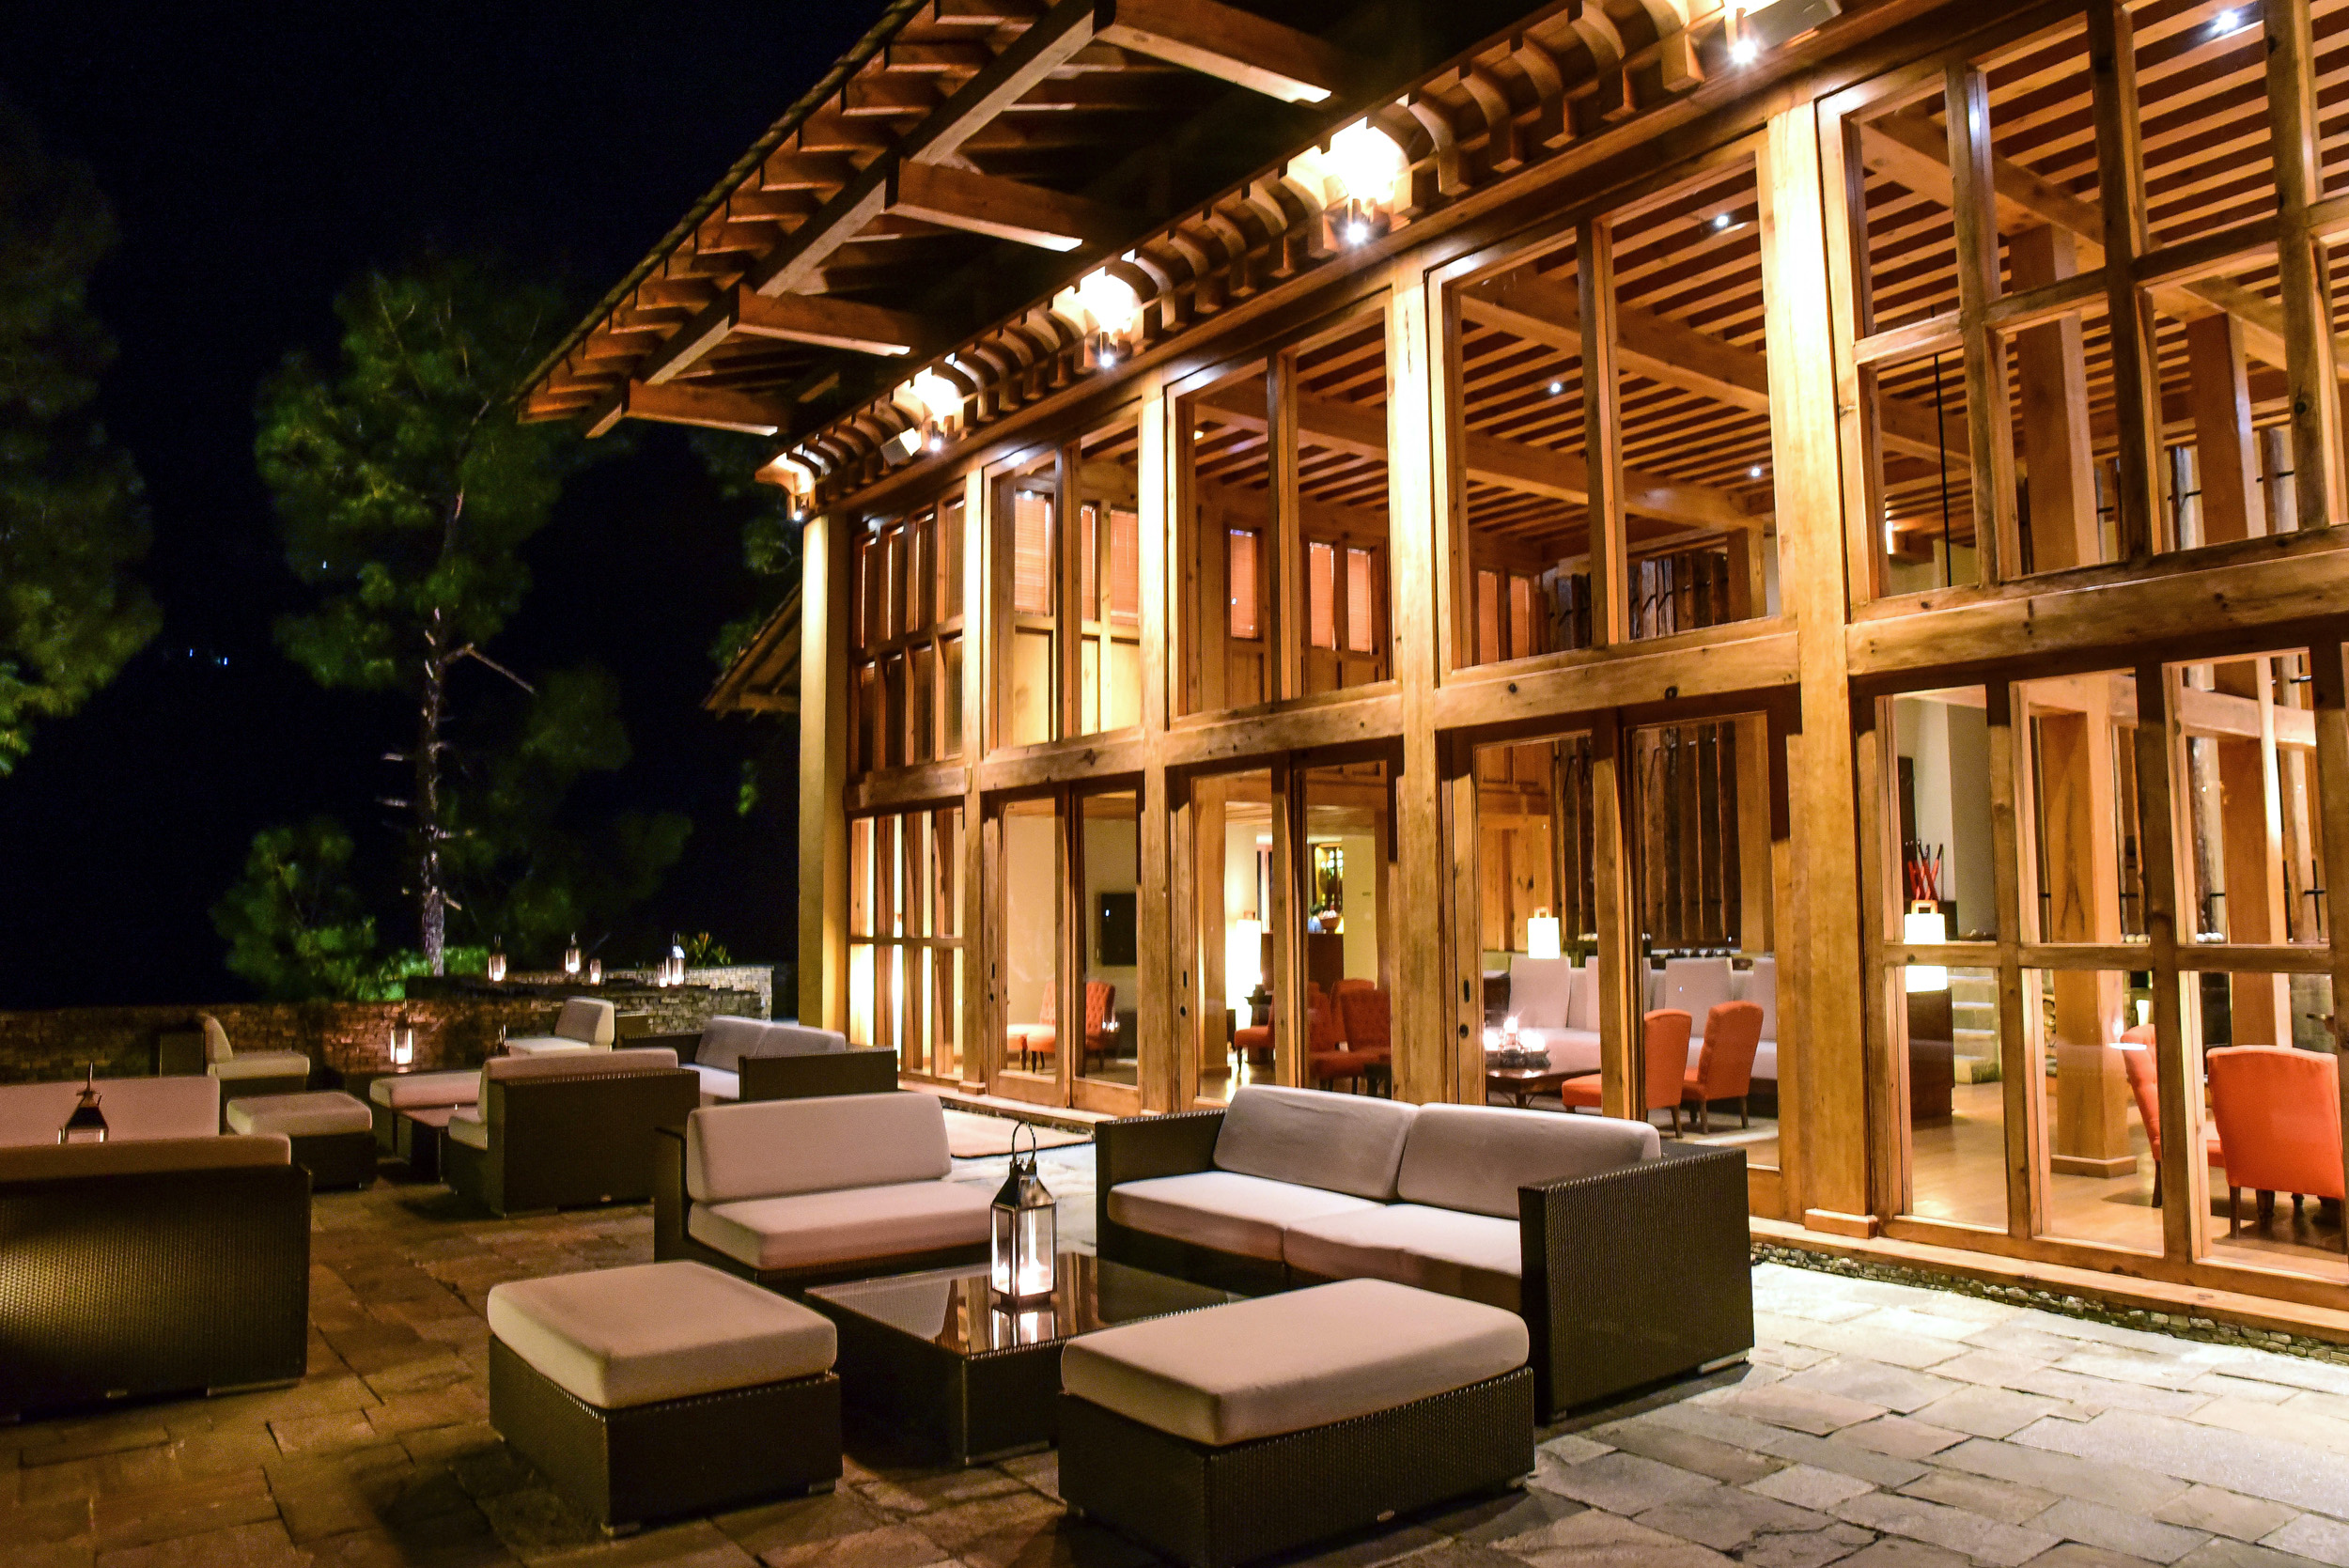 Looking at an open, airy and wooden building with restaurant seating inside and outdoor seating arrangements on the tiled floor outside it at night in Bhutan